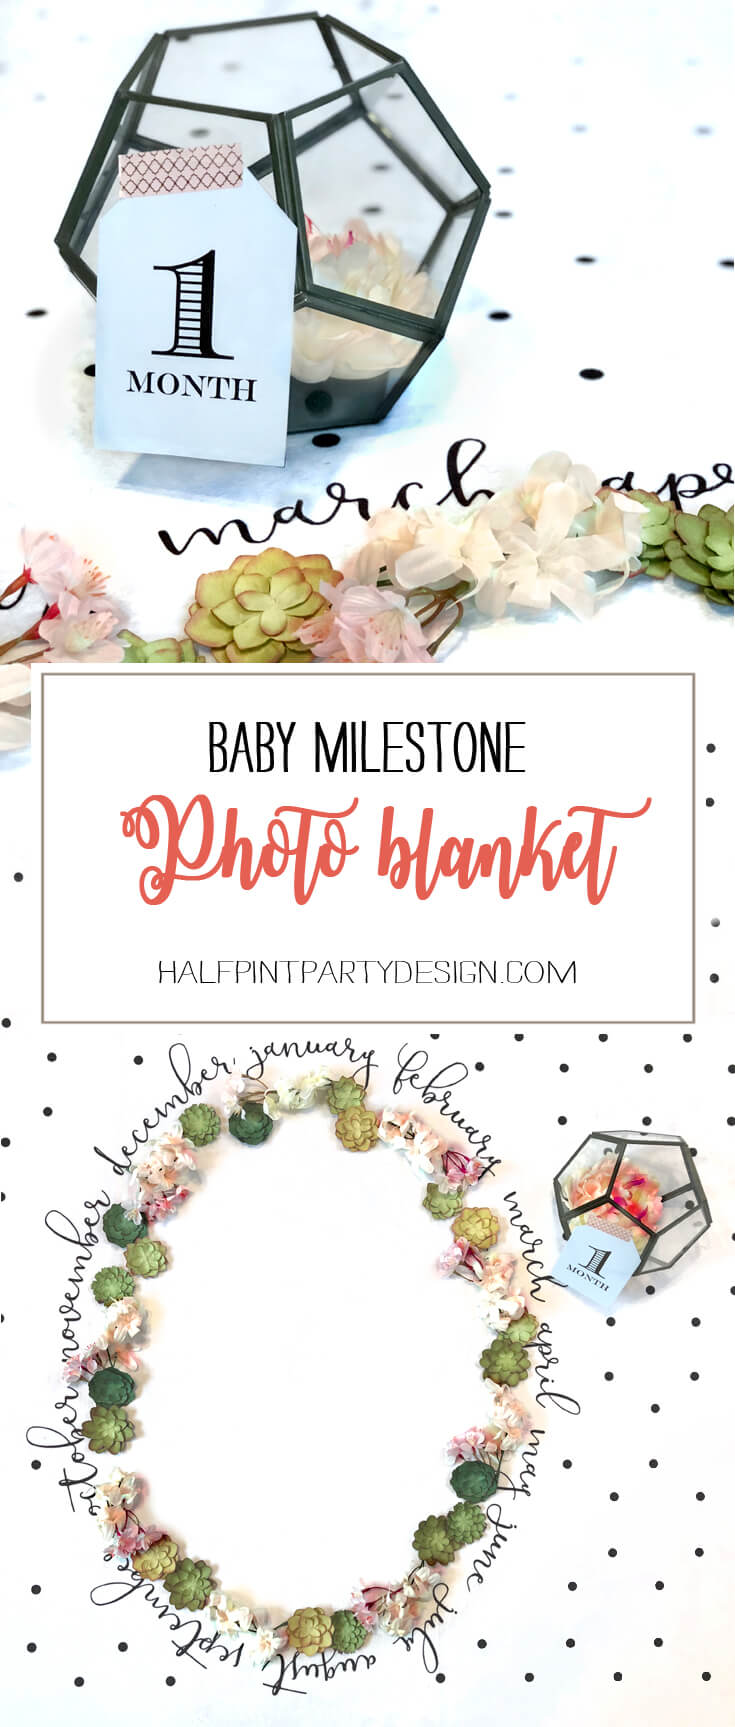 Baby Milestone Blanket photo backdrop, oval of flowers and succulents for newborn photography. Halfpint Design